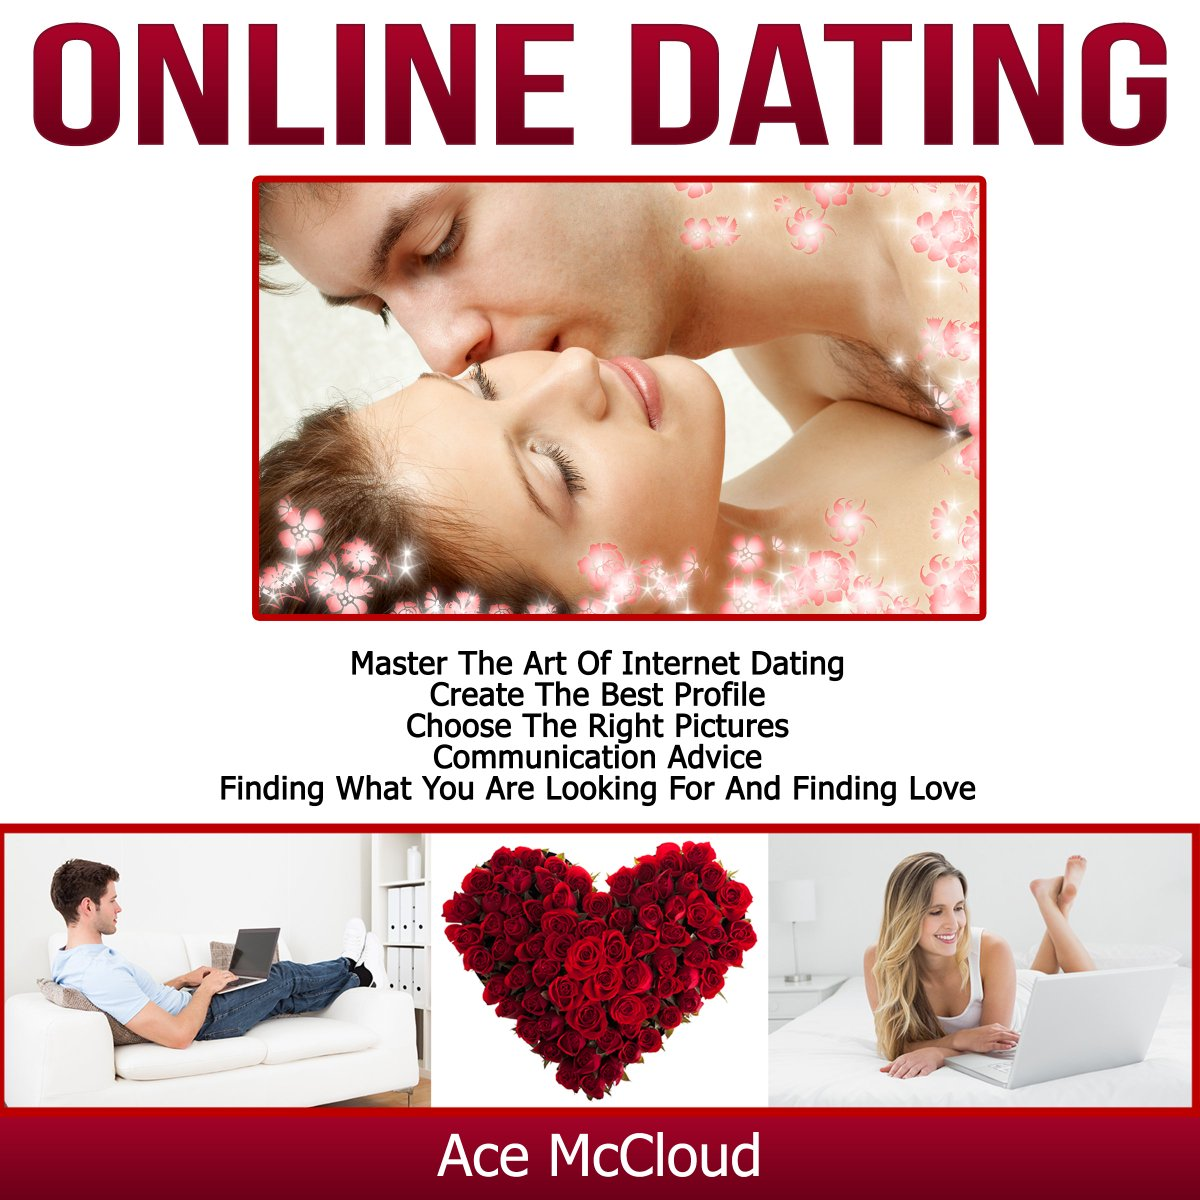 Find Your True #Love Using #OnlineDating! #AudioBook is available Today!  http:// geni.us/Mo90SFJ  &nbsp;  <br>http://pic.twitter.com/ktbyZILG2S